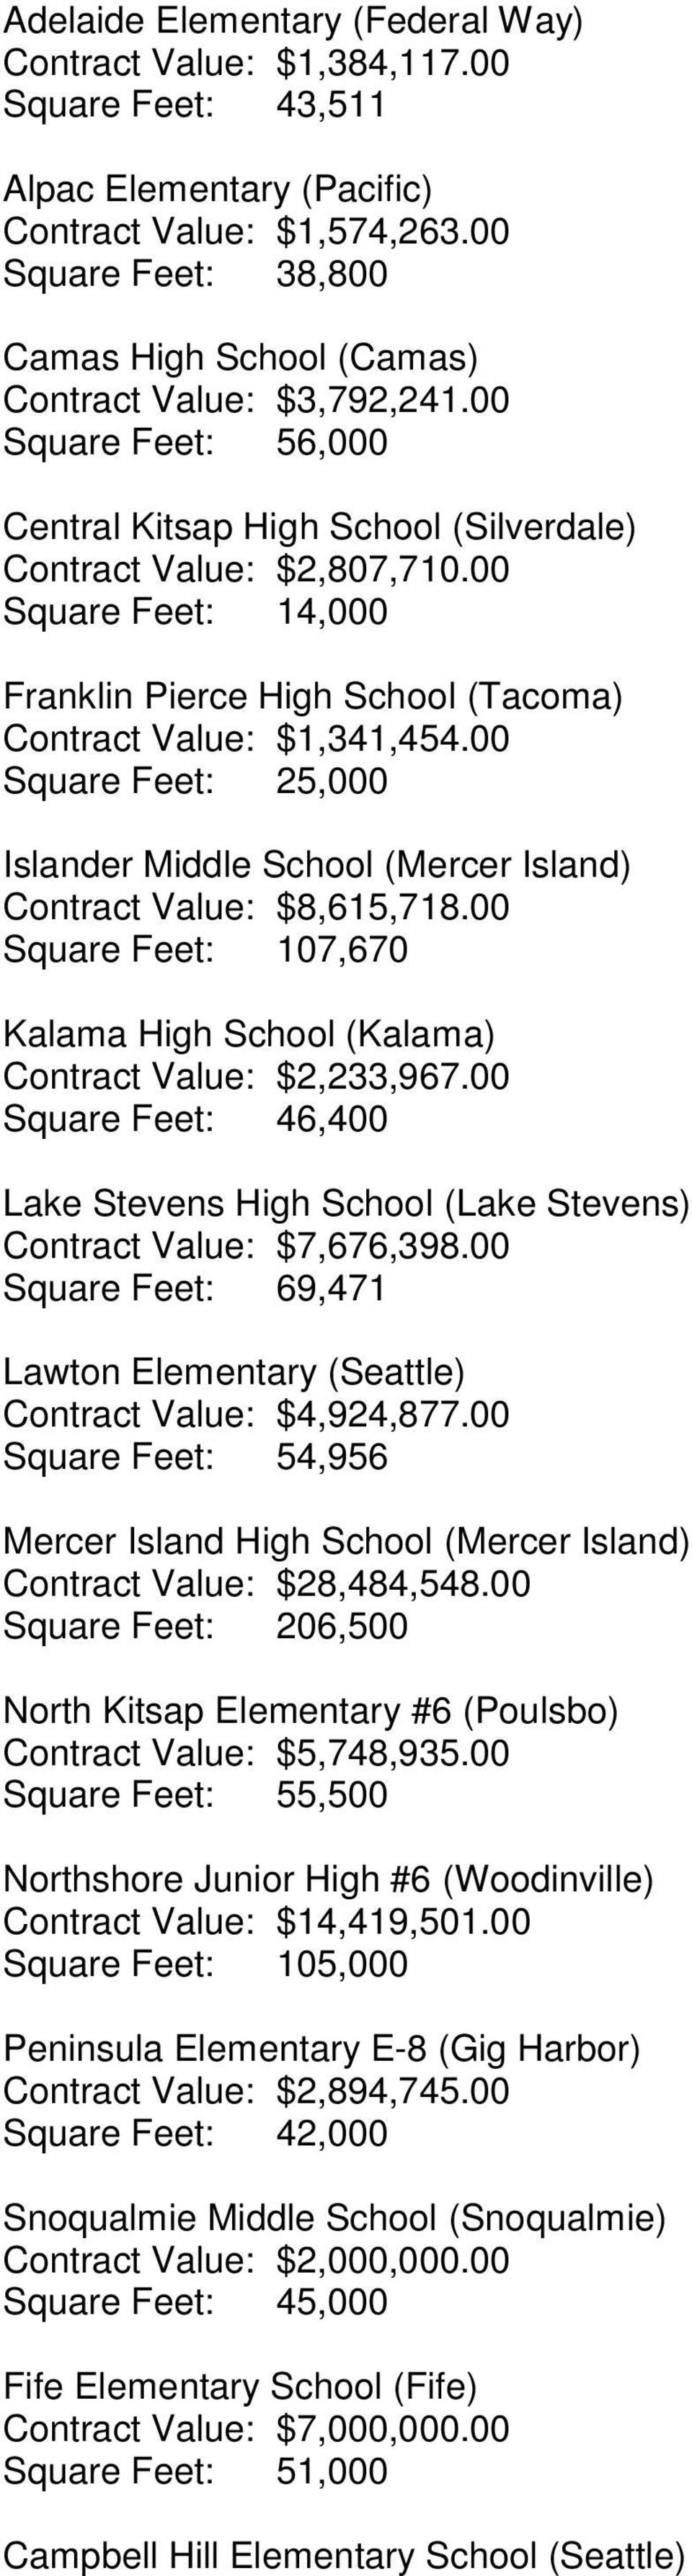 00 Square Feet: 14,000 Franklin Pierce High School (Tacoma) Contract Value: $1,341,454.00 Square Feet: 25,000 Islander Middle School (Mercer Island) Contract Value: $8,615,718.